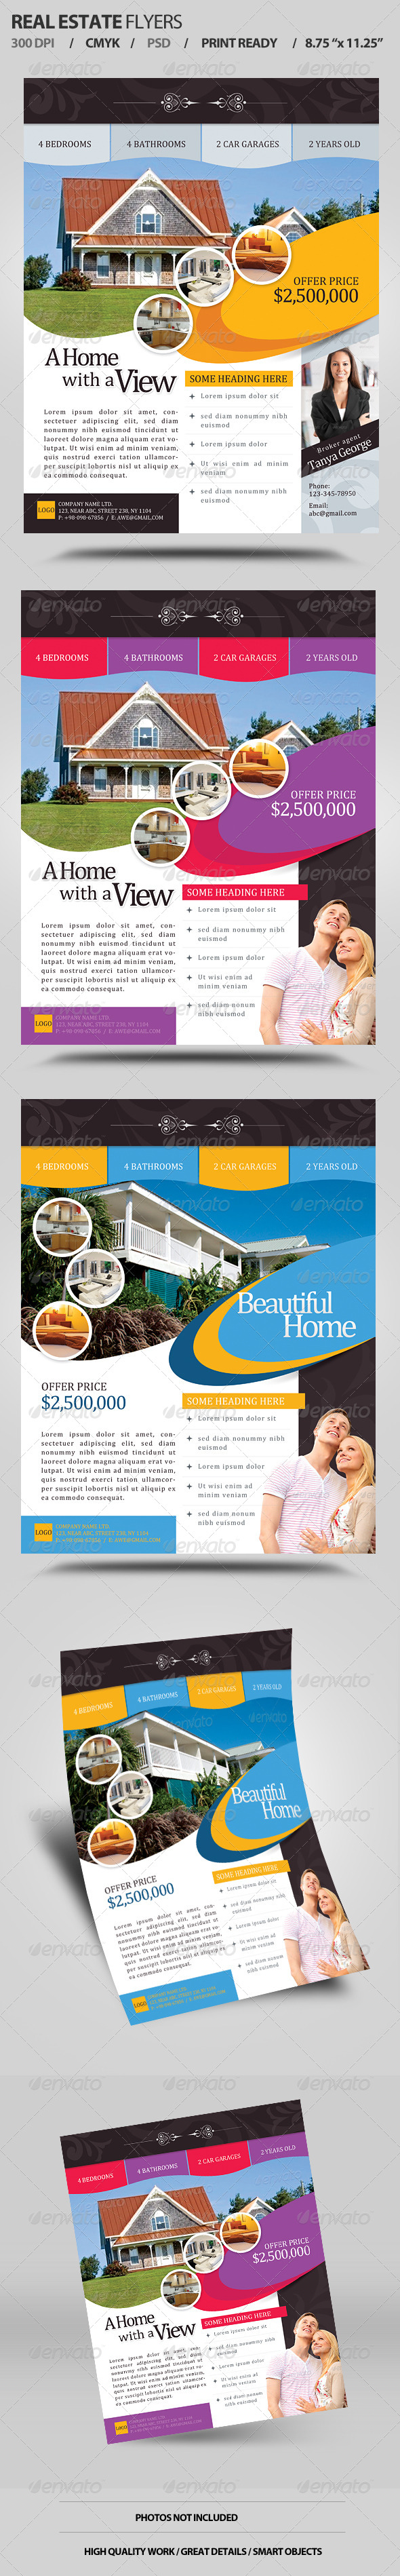 Real Estate Flyers V1 - Corporate Flyers